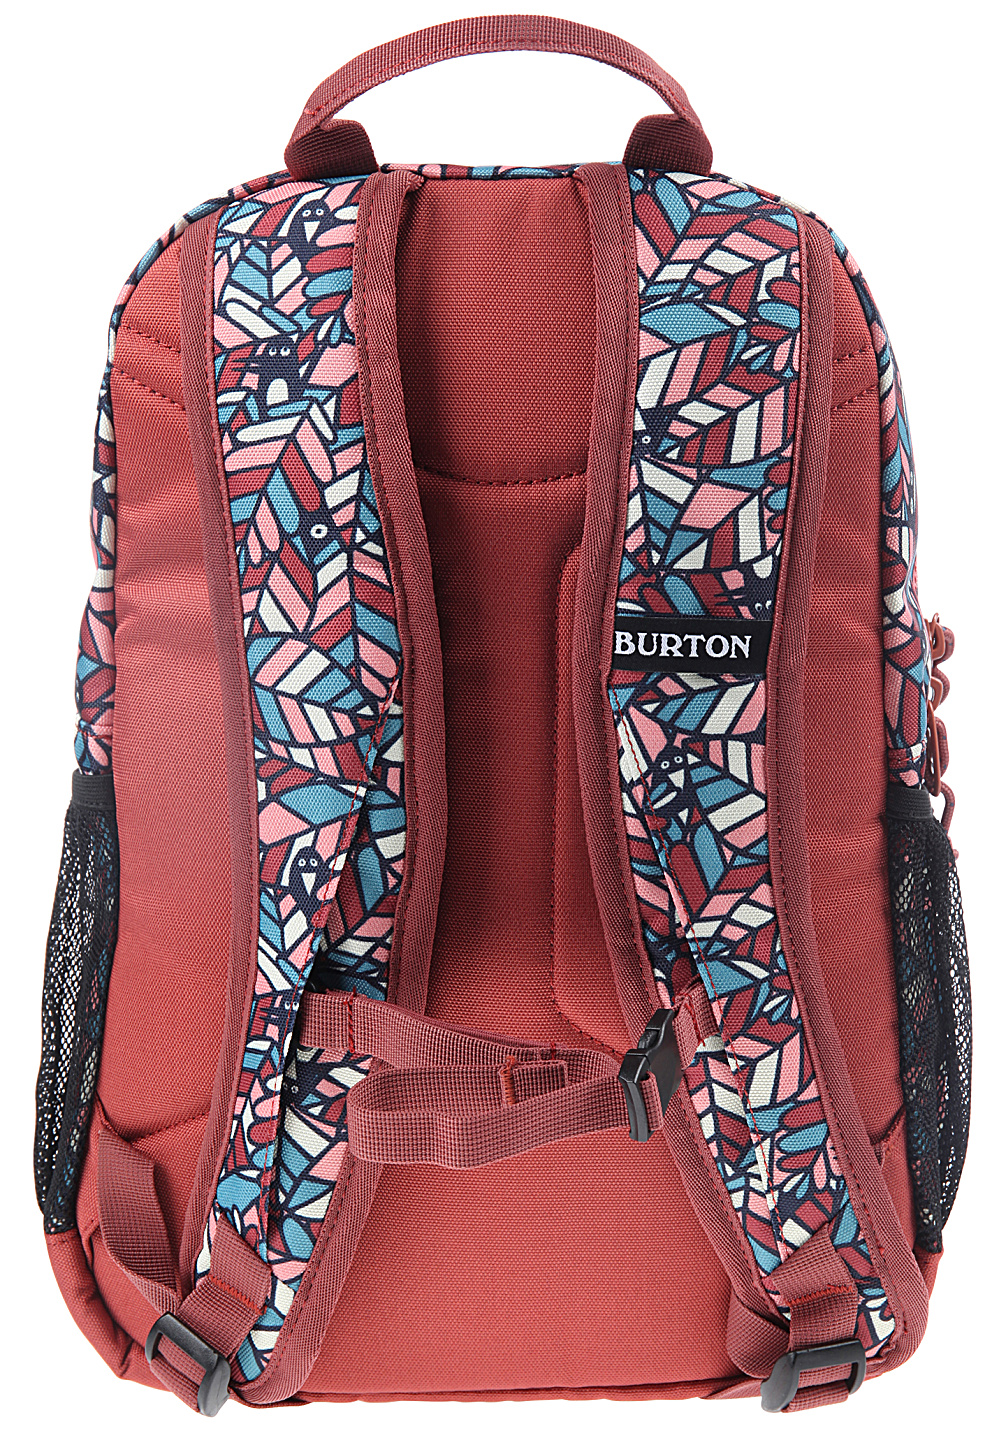 d81df1c88b Burton Gromlet 15 L - Backpack for Kids Girls - Multicolor